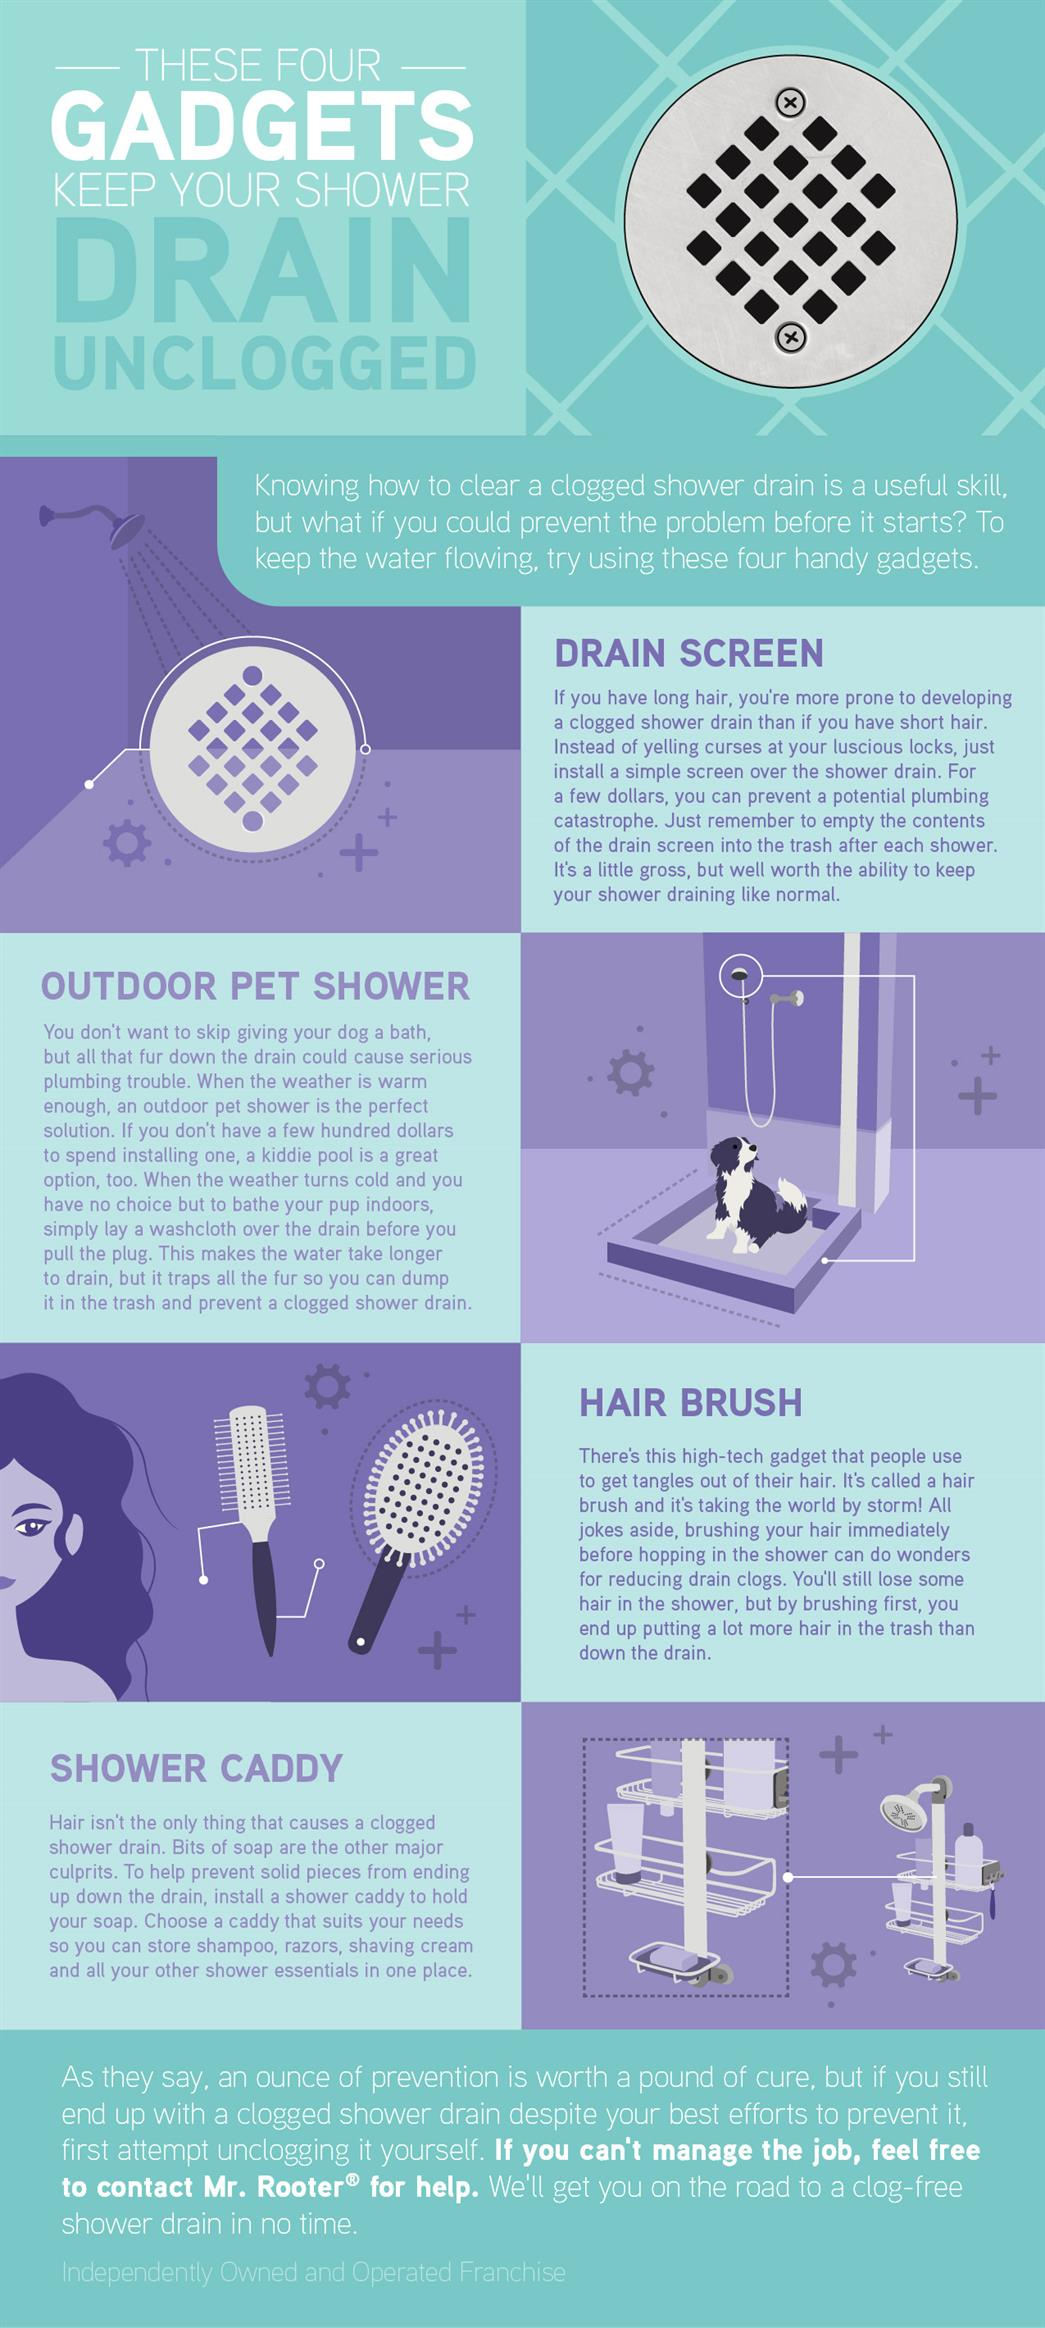 Four gadgets to keep your shower drain unclogged infographic.